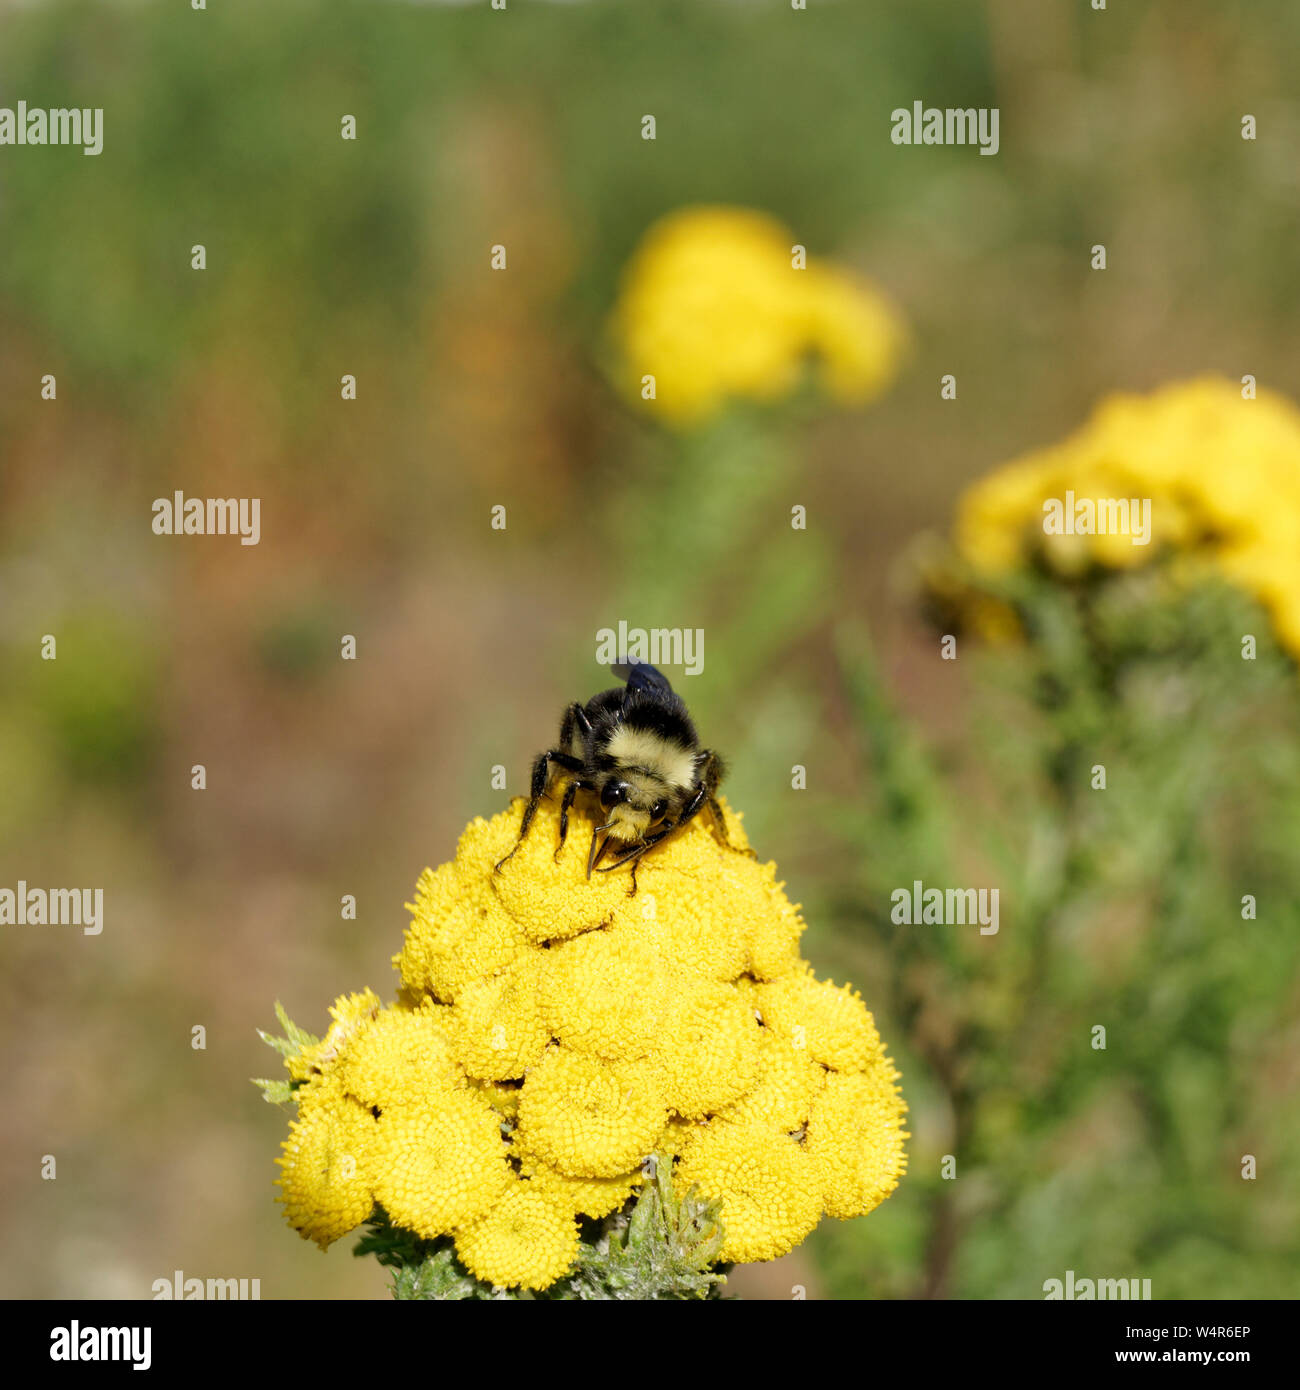 closeup-of-bumblebee-gathering-pollen-on